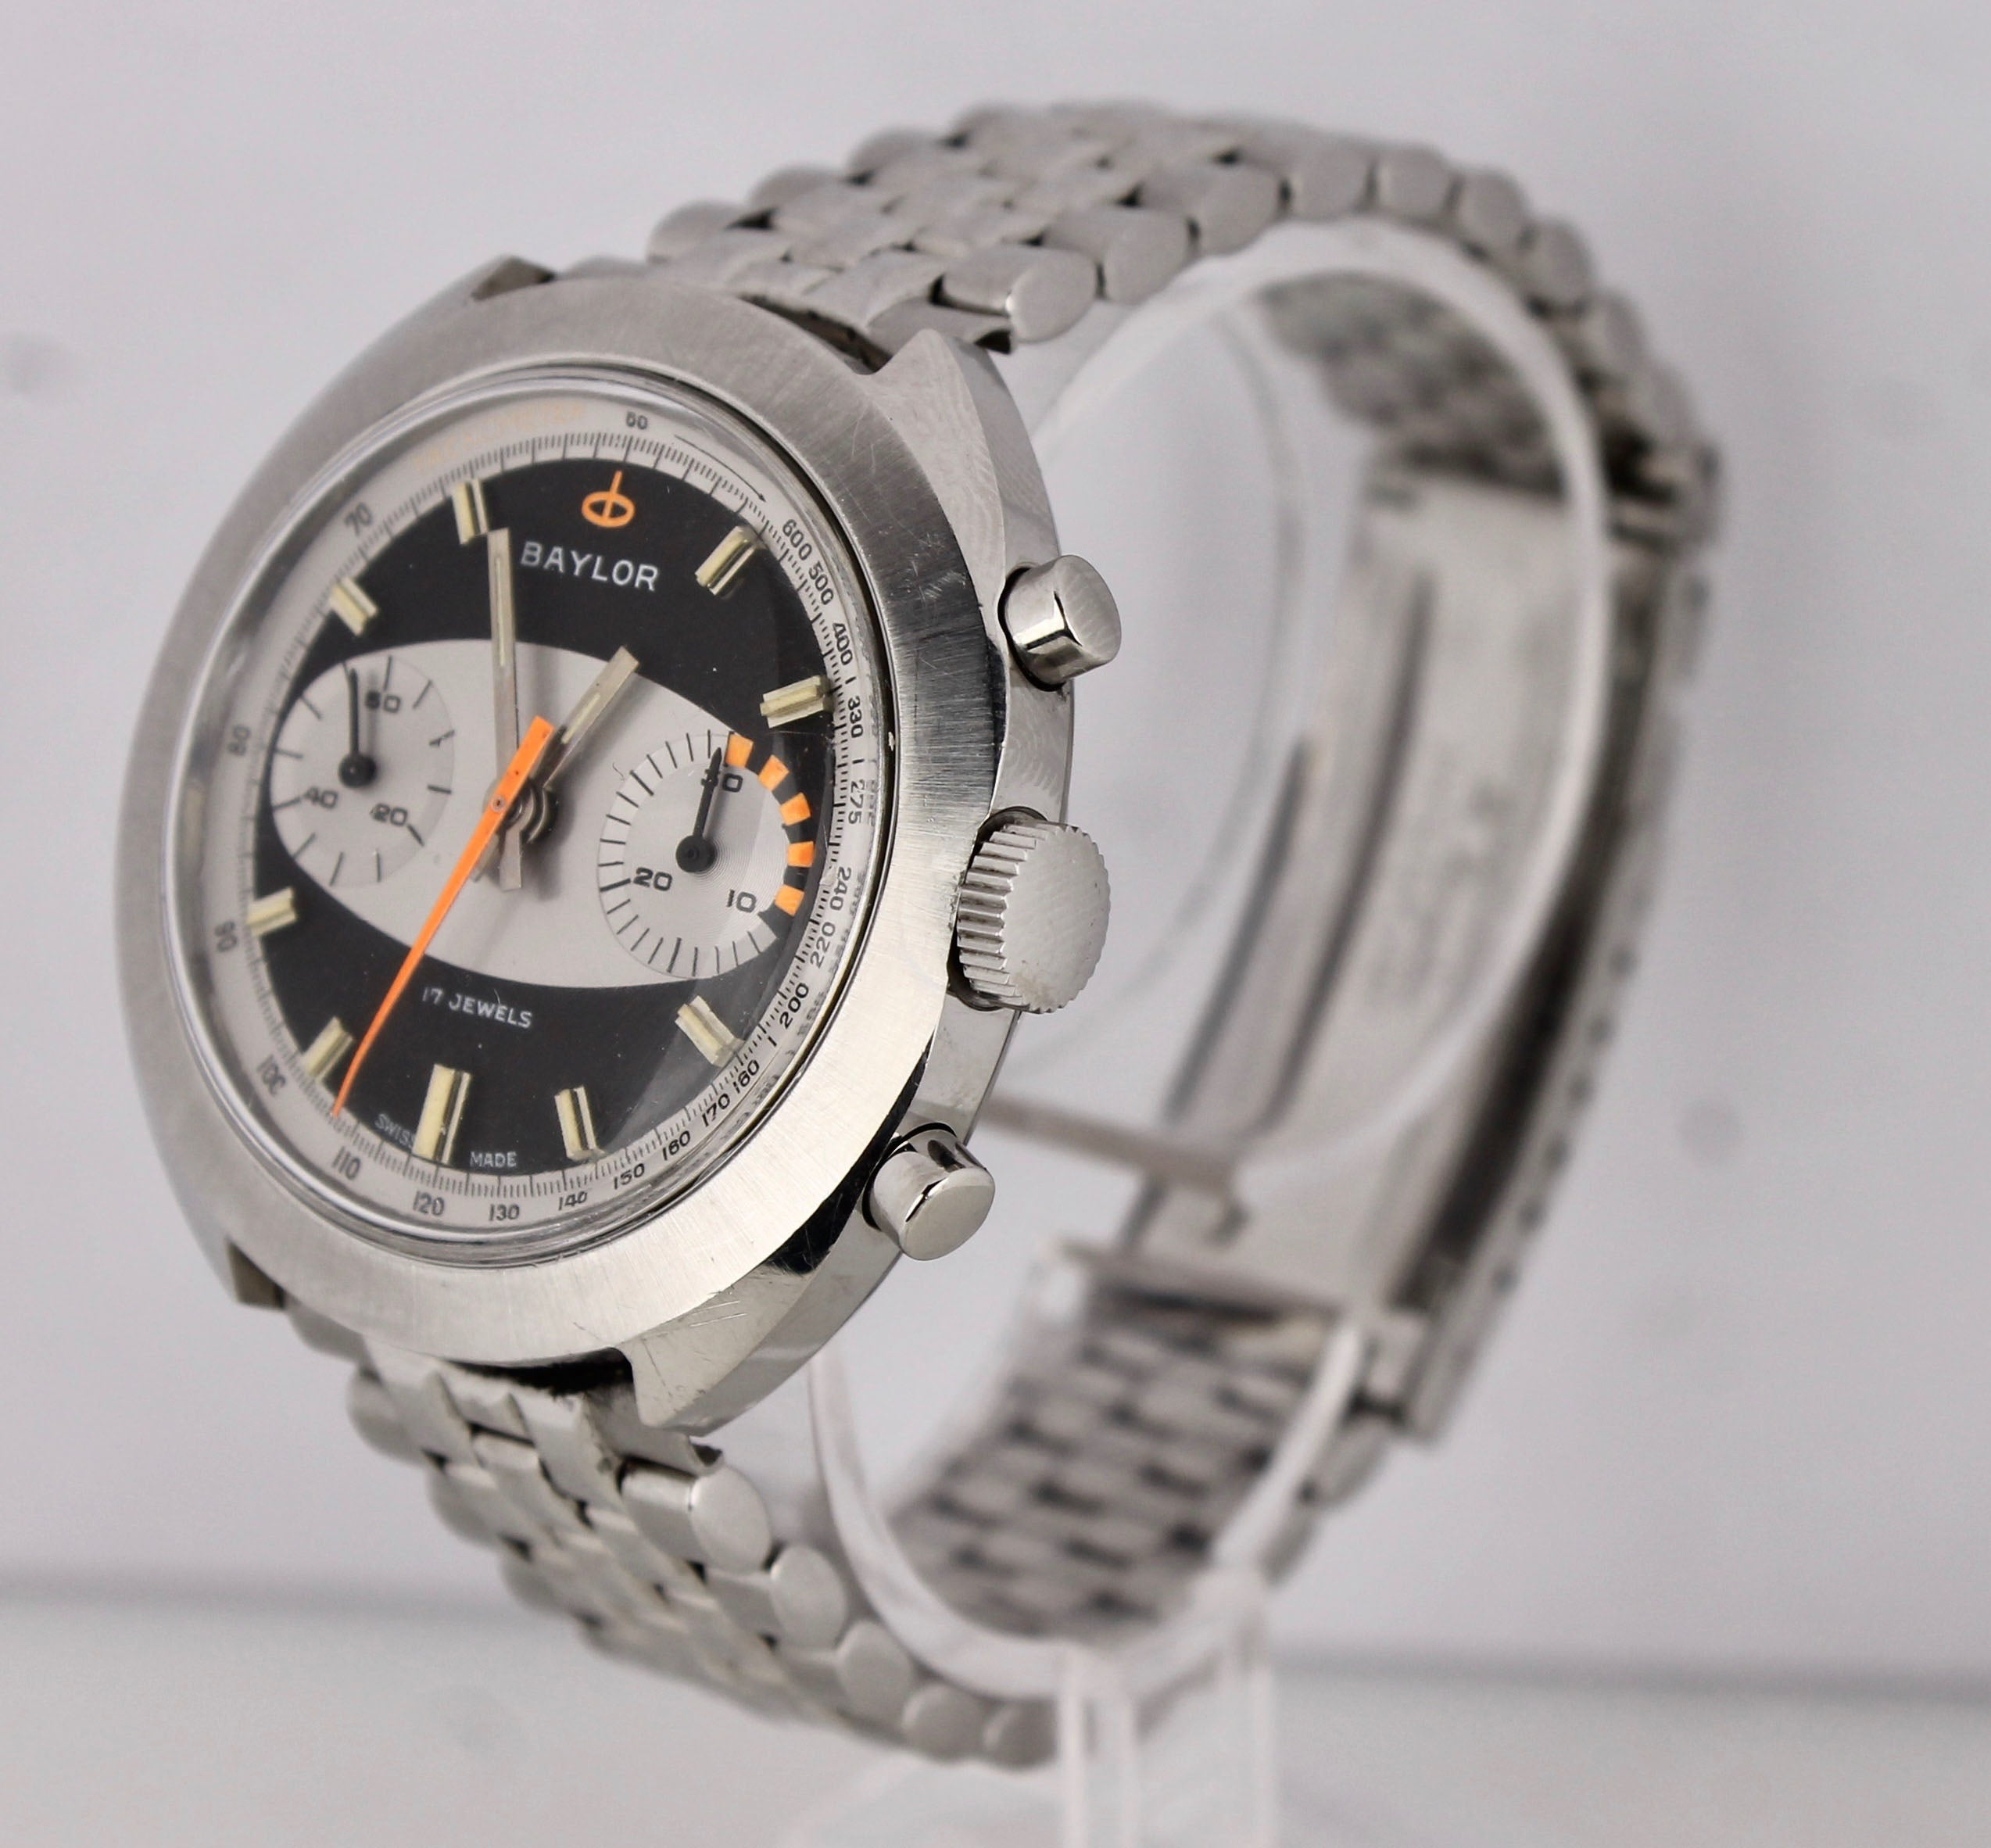 Vintage Baylor Landeron Datora Surfboard 39mm Racing Chronograph 149 Steel Watch